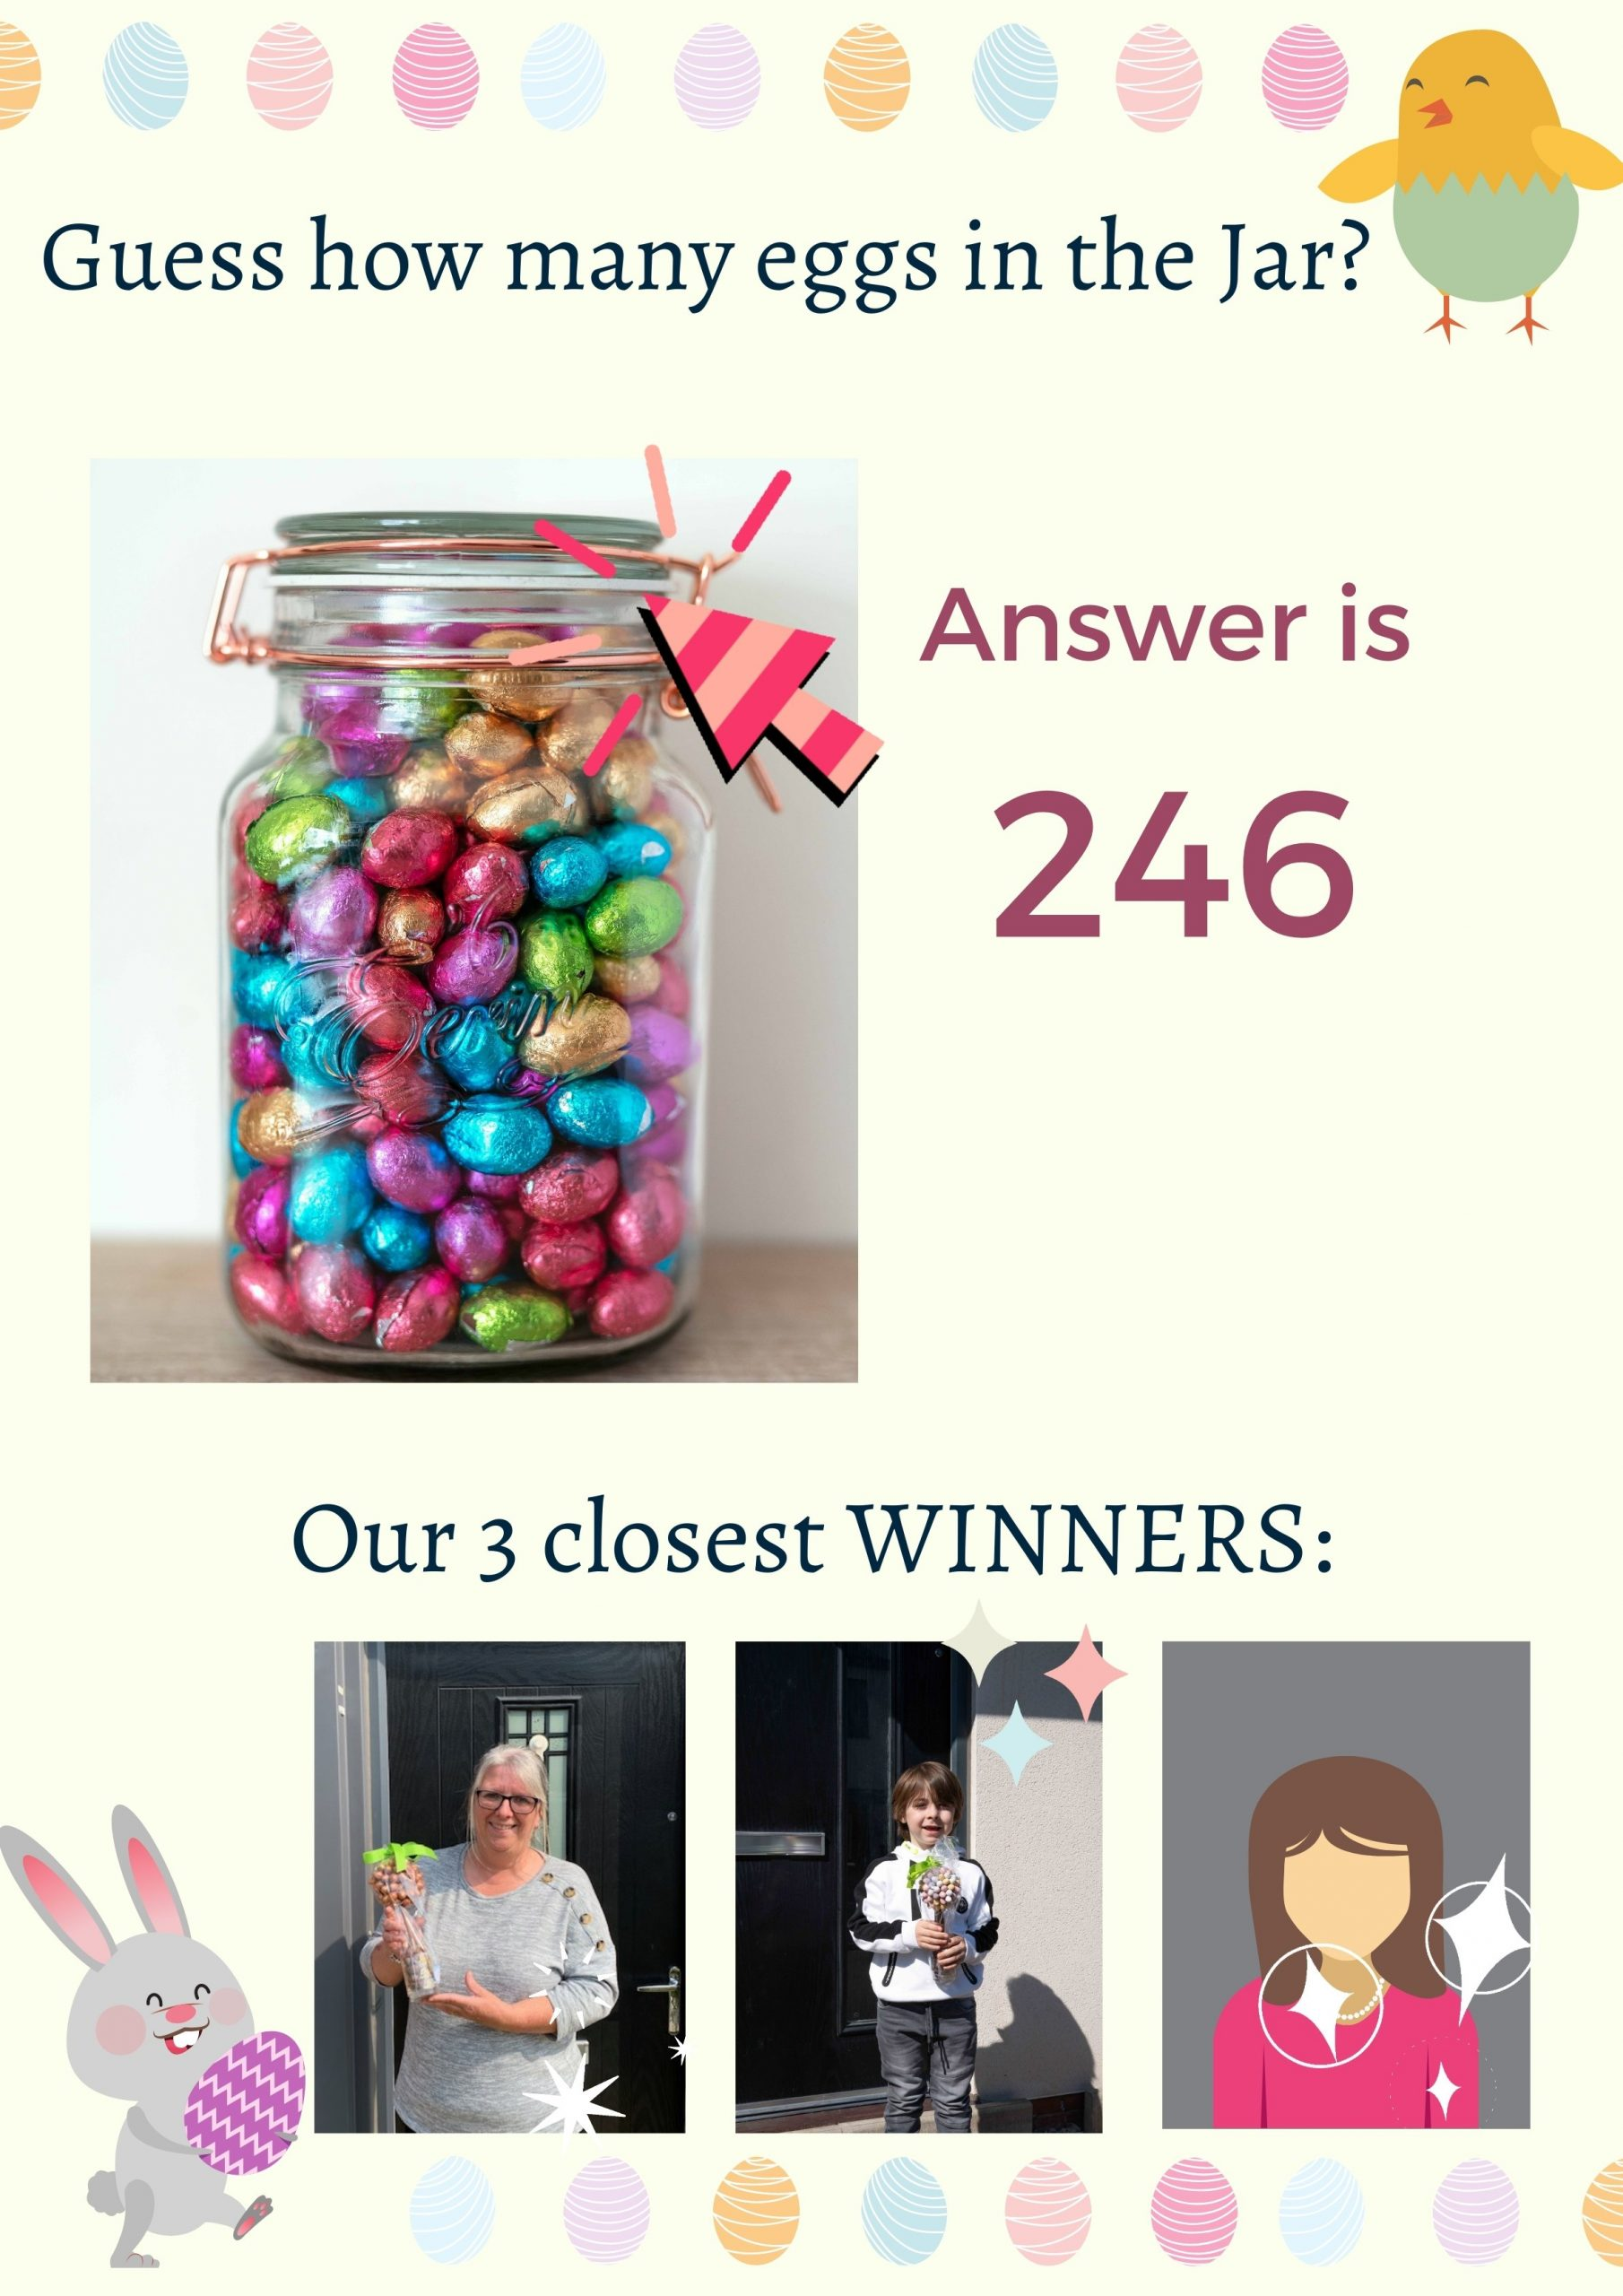 A picture of a jar full of foil-wrapped eggs, showing the correct answer as 246. Photographs of the three winners are lined up at the bottom.